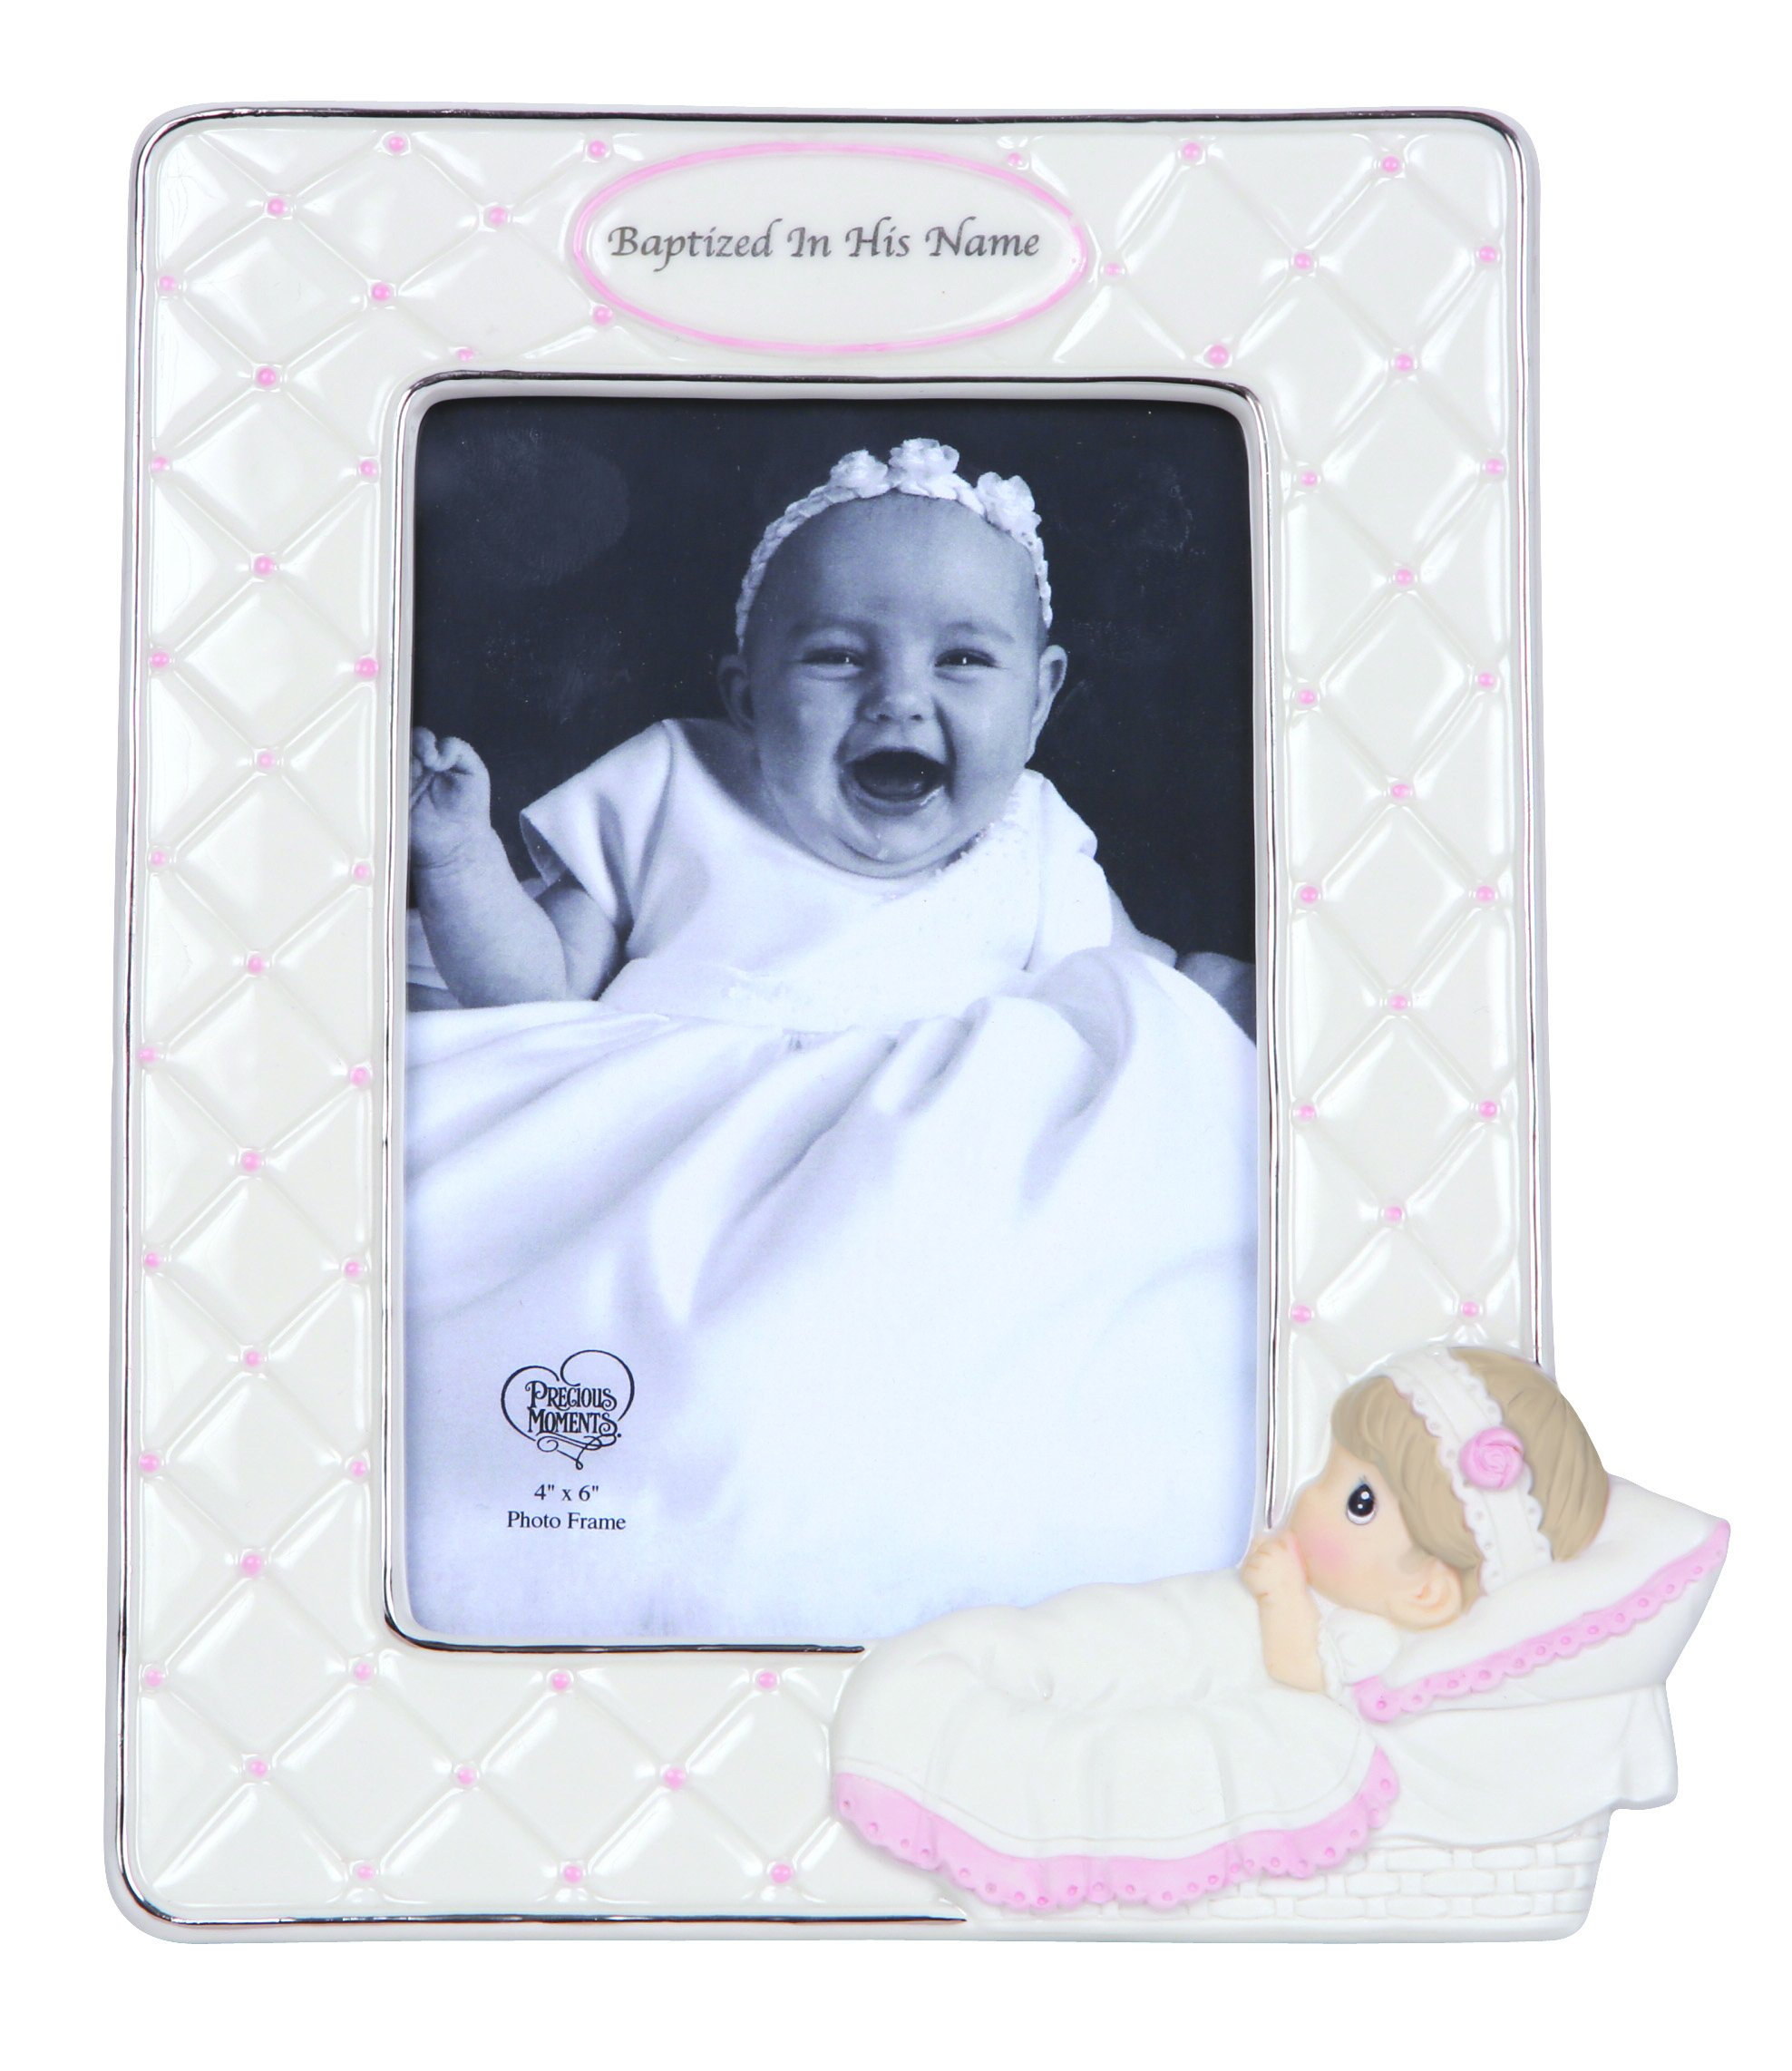 Precious Moments, Baptized In His Name, Bisque Porcelain Photo Frame, Girl, 143400